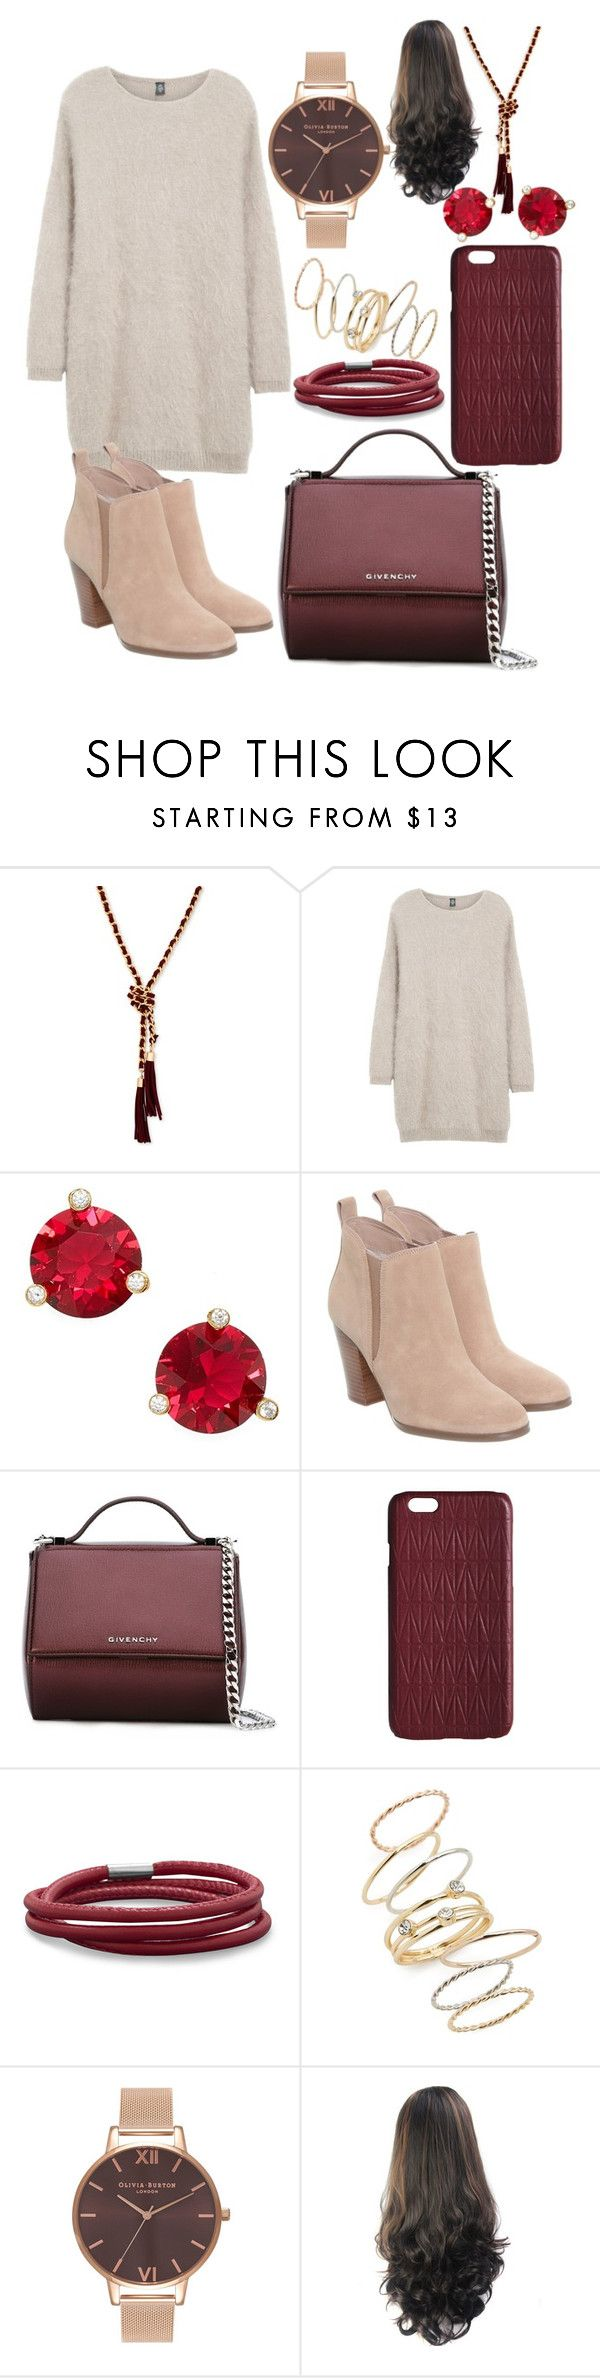 """""""..."""" by xshalouise ❤ liked on Polyvore featuring GUESS, Eleventy, Kate Spade, Michael Kors, Givenchy, Dagmar, BillyTheTree, BP. and Olivia Burton"""